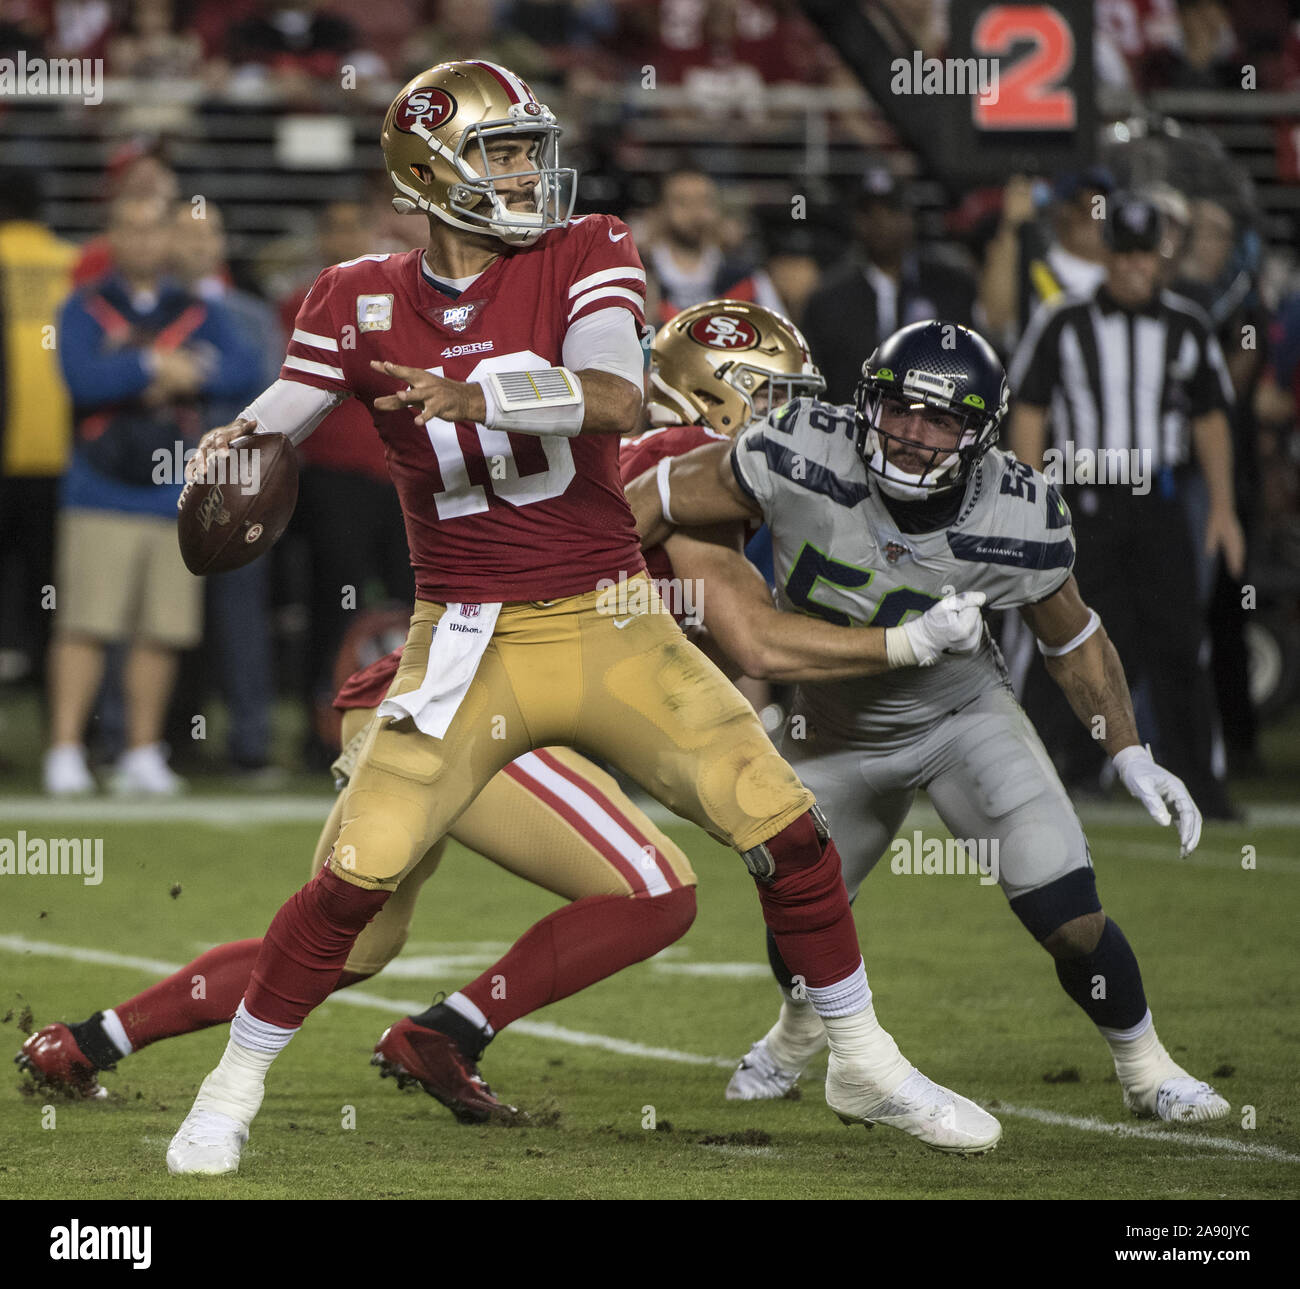 Santa Clara, California, USA . 11th Nov, 2019. San Francisco 49ers quarterback Jimmy Garoppolo (10) throws against the Seattle Seahawks in the third quarter at Levi's Stadium in Santa  Clara, California on Monday, November 11, 2019. The Seahawks defreated the 49ers 27-24 in overtime.    Photo by Terry Schmitt/UPI Credit: UPI/Alamy Live News Stock Photo